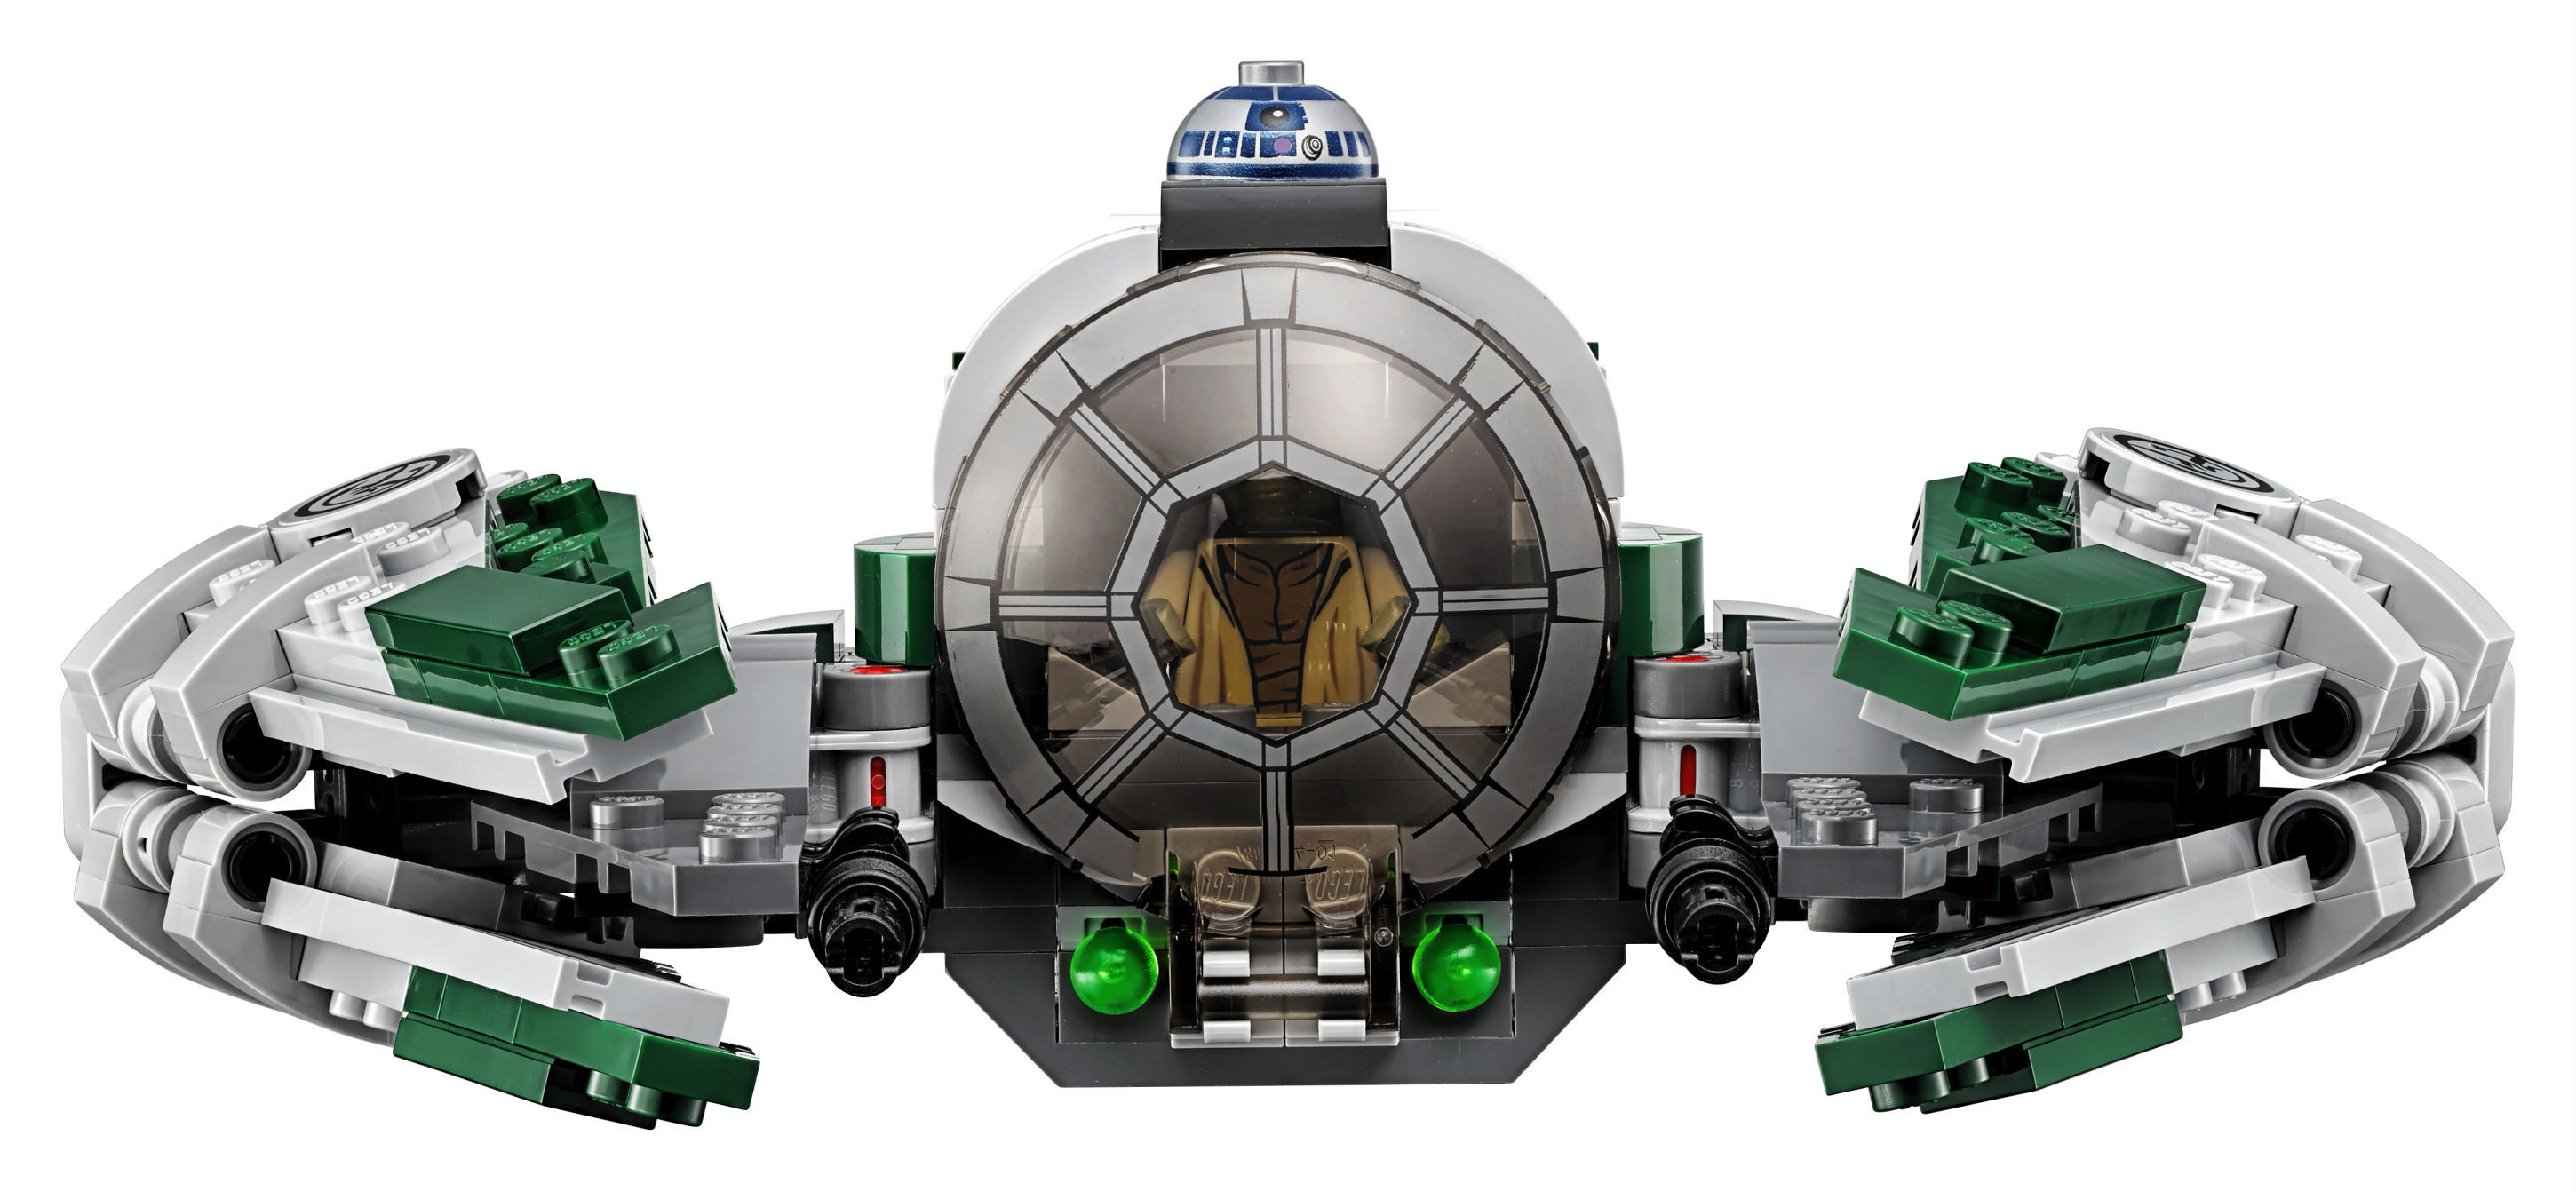 Star Wars Lego Toys : Top hottest star wars toys and collectibles for that